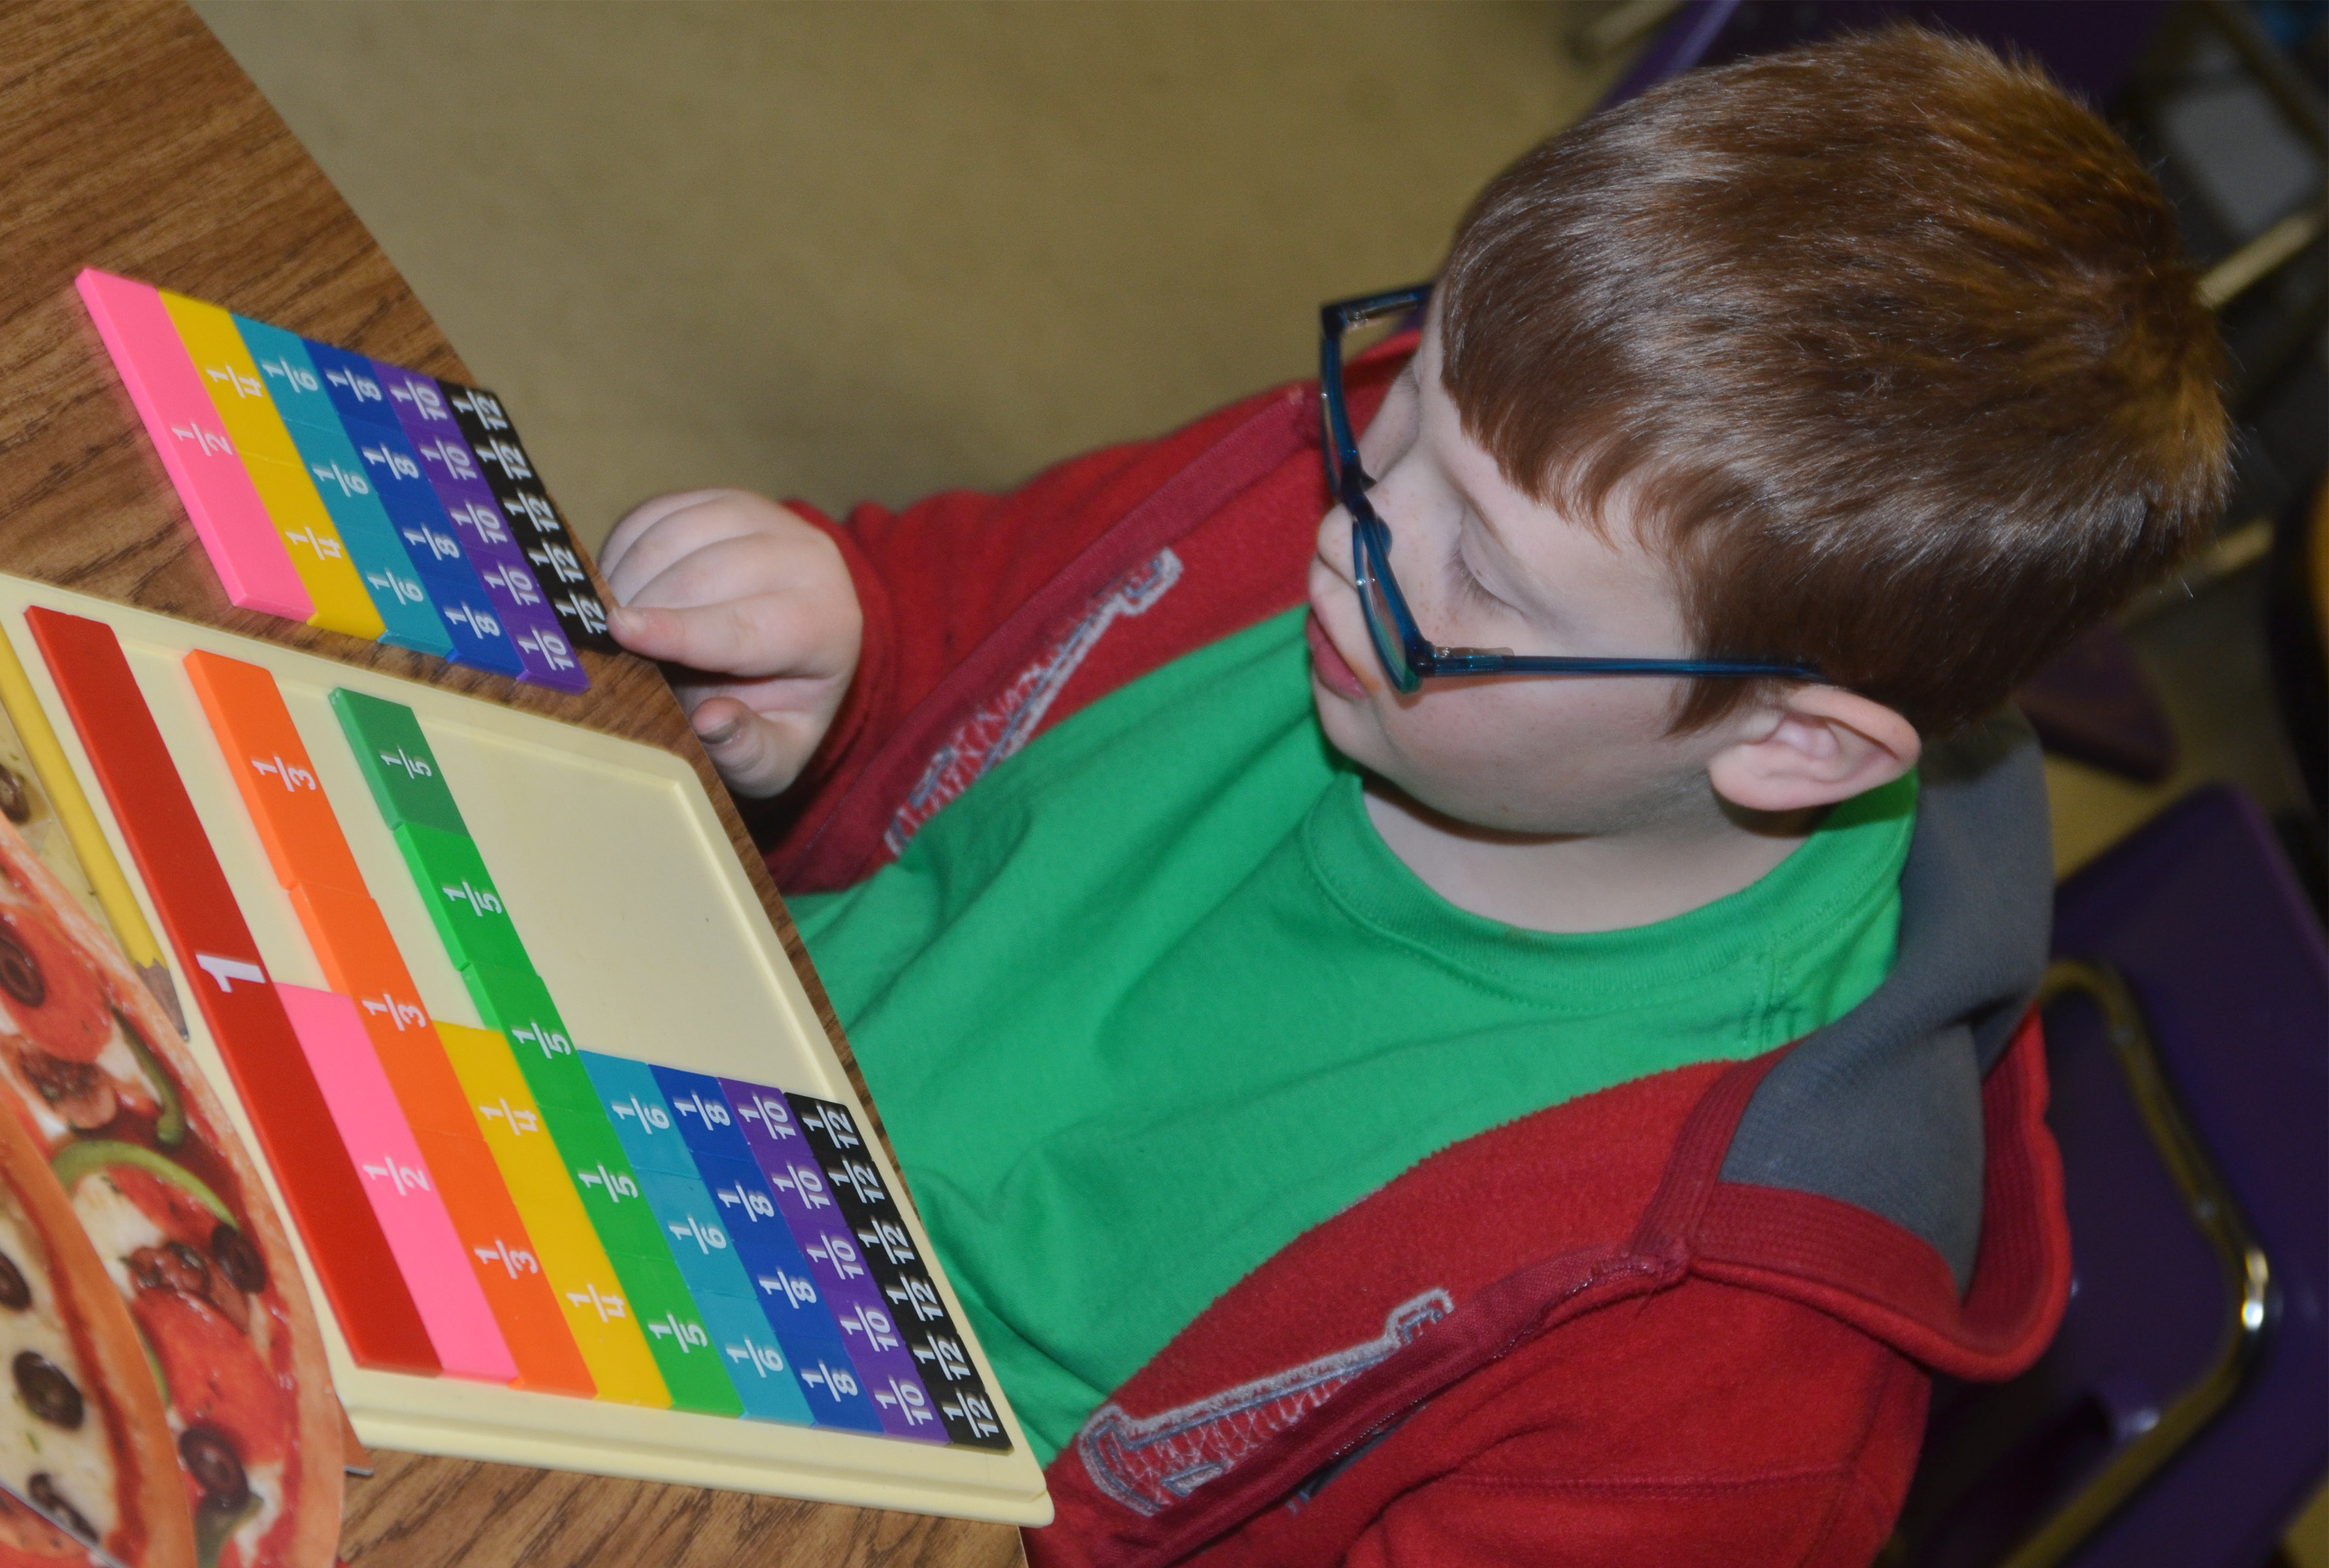 CES third-grader Aidan Phillips uses a math game to study fractions.